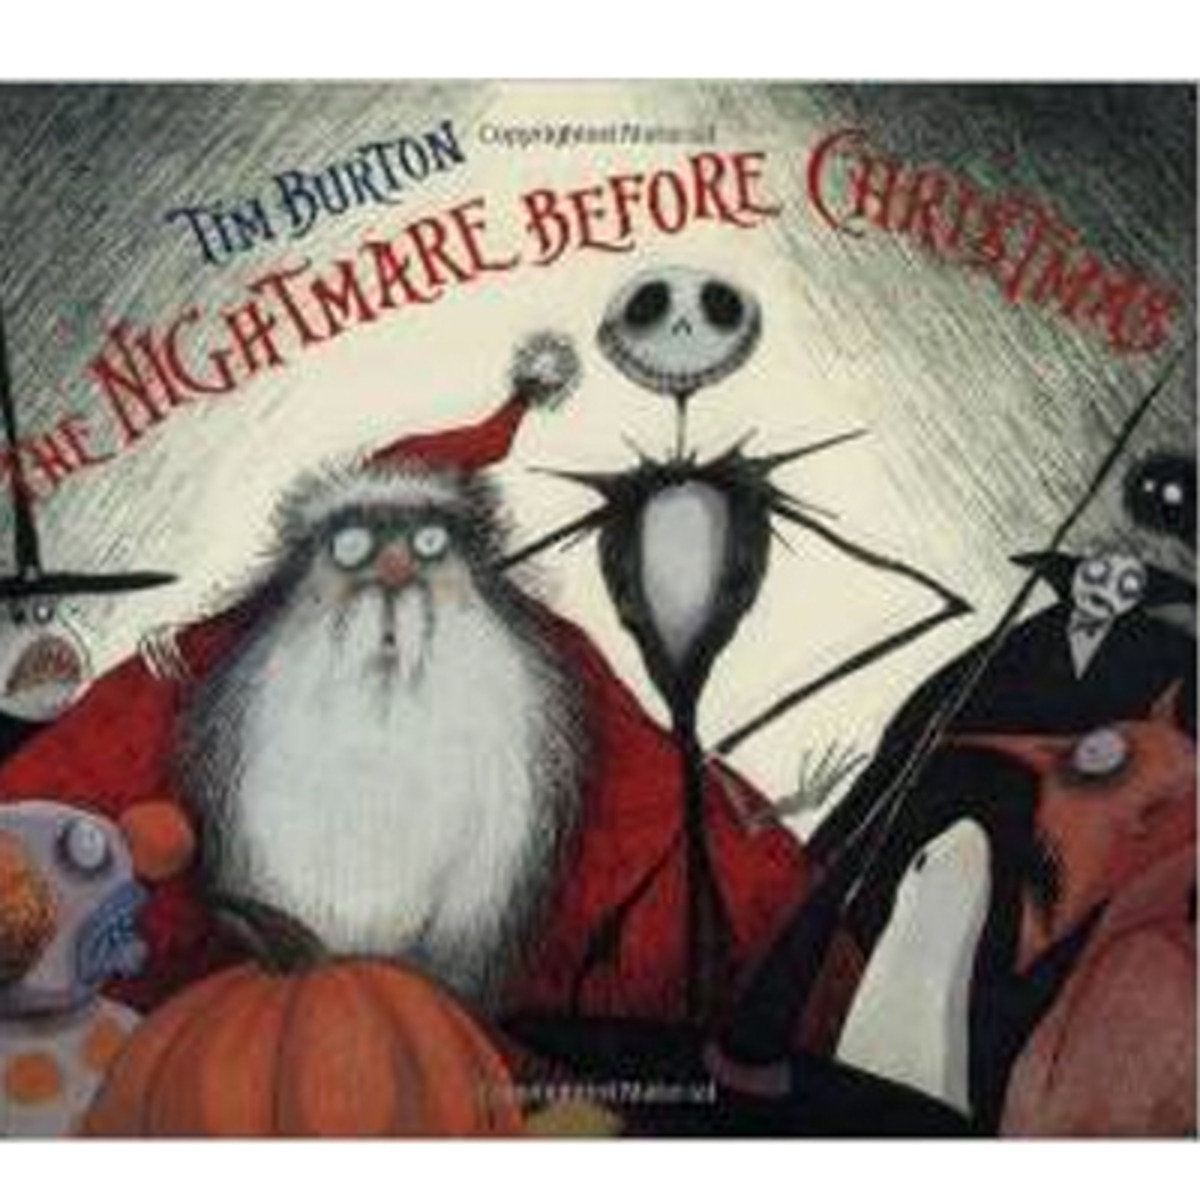 THE NIGHTMARE BEFORE CHRISTMAS 9780786849086